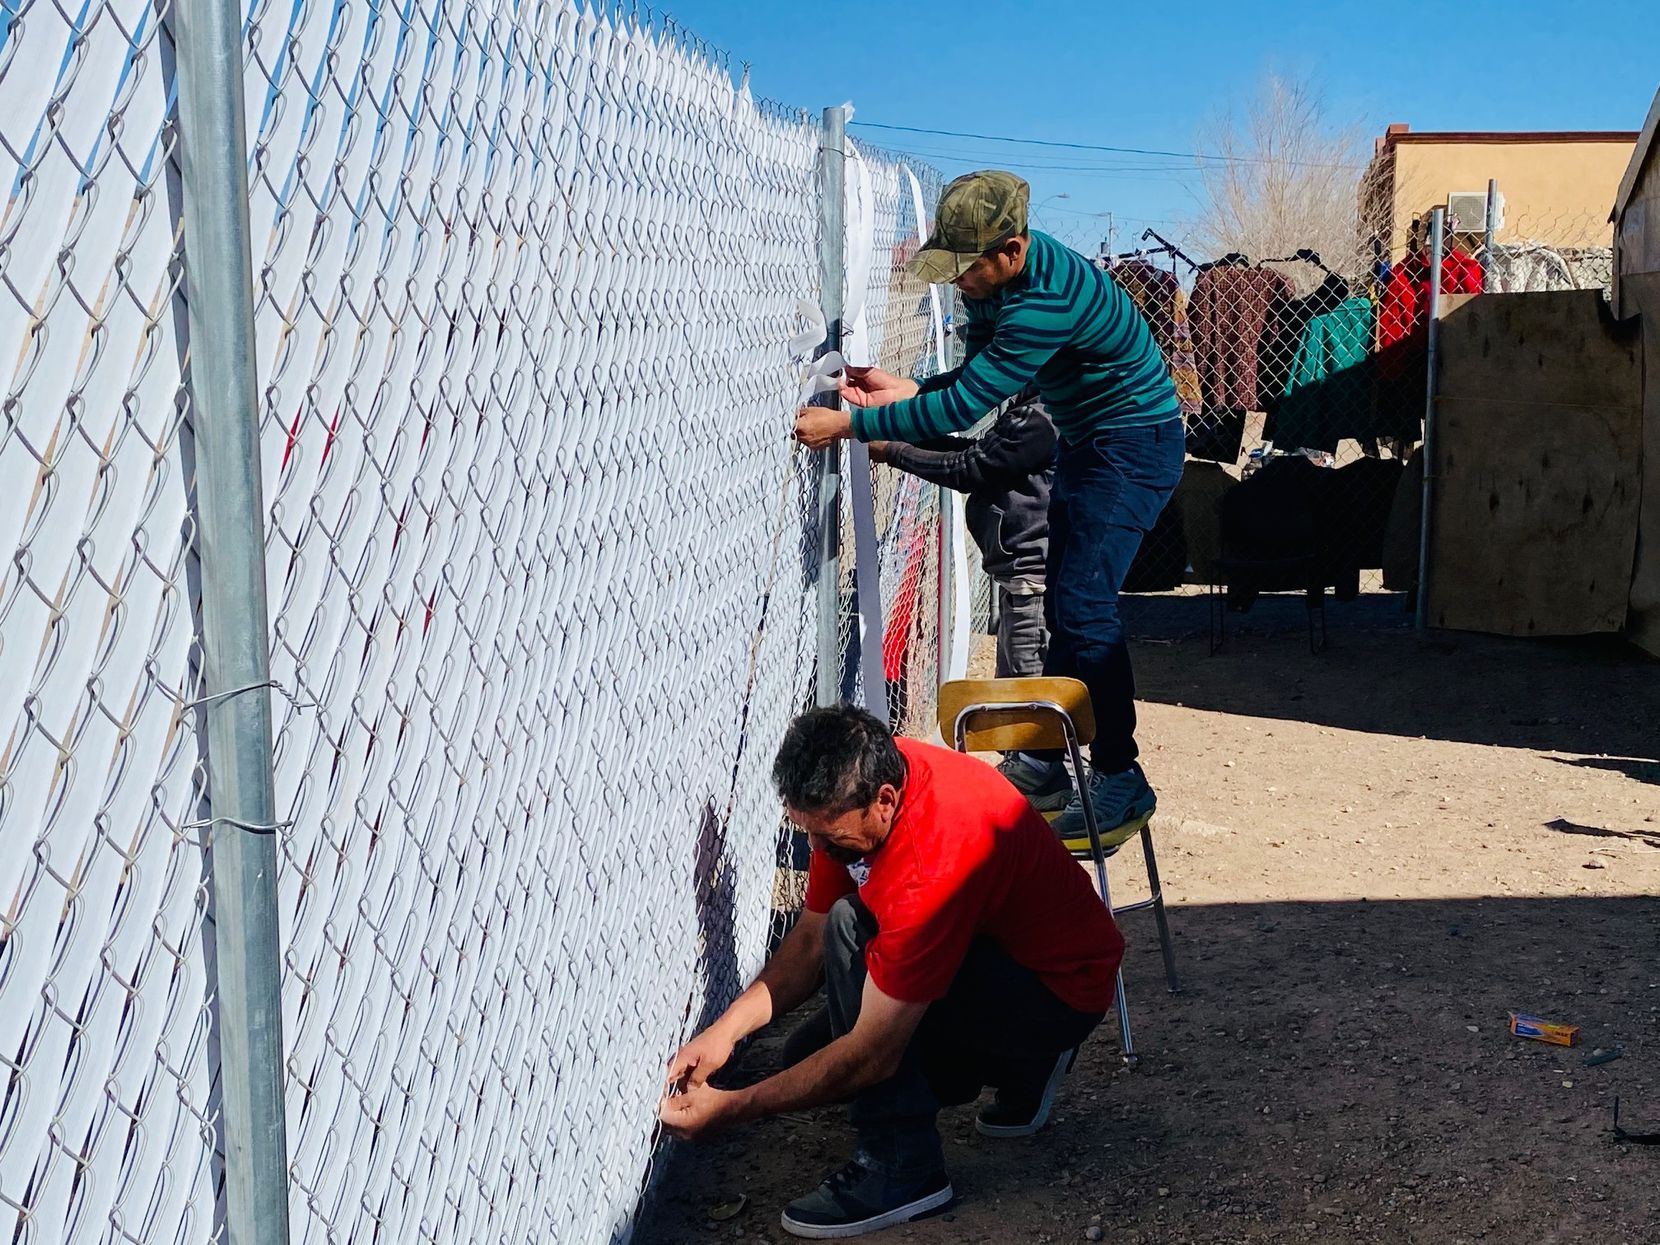 Migrants at the Tierra de Oro, or Land of Gold shelter, volunteer to expand the facility in anticipation of a migration surge. The two migrants worked on the shelter in February 2021 in the tiny town of Paloma, Mexico, about 100 miles west of El Paso.